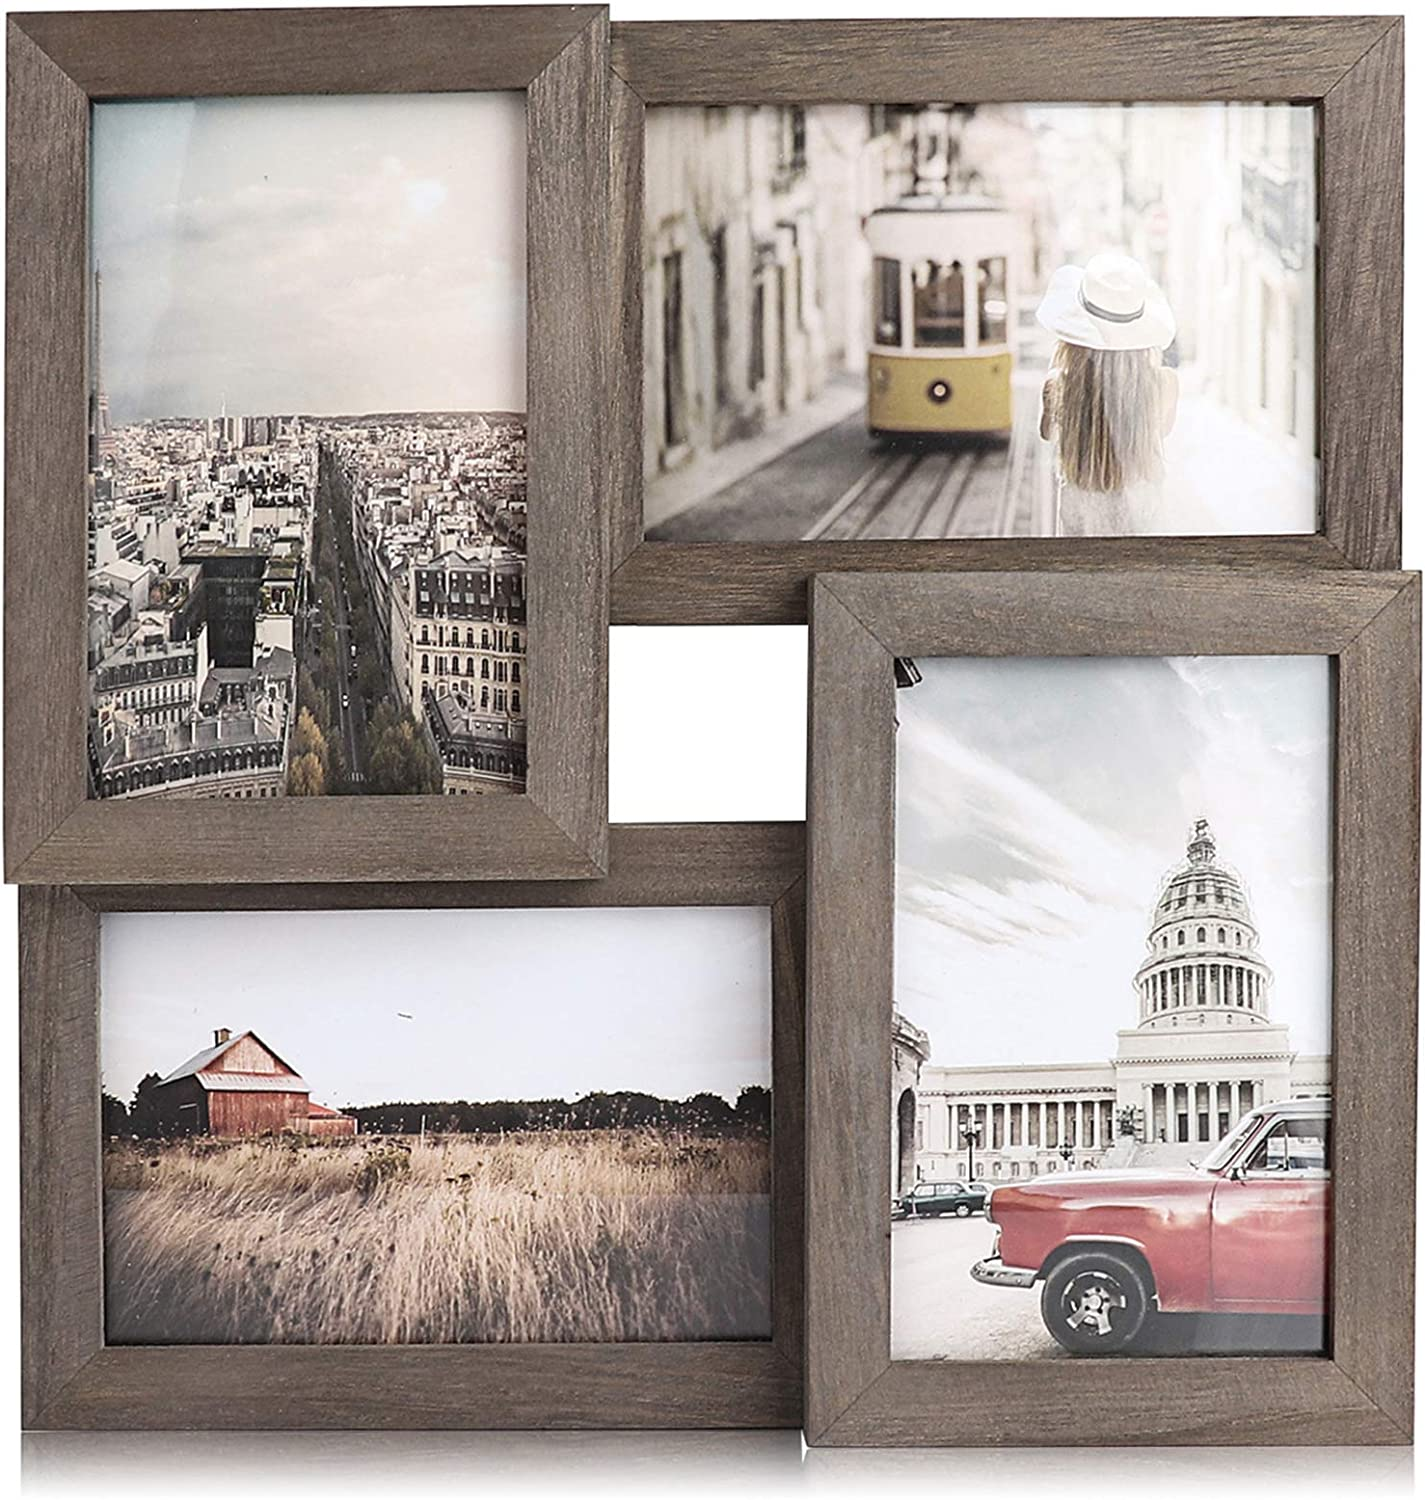 Emfogo 4x6 Picture Frames Wood Collage Picture Frames with High Definition Glass Multi Rustic Photo Frames for Wall and Desk Display Weathered Grey